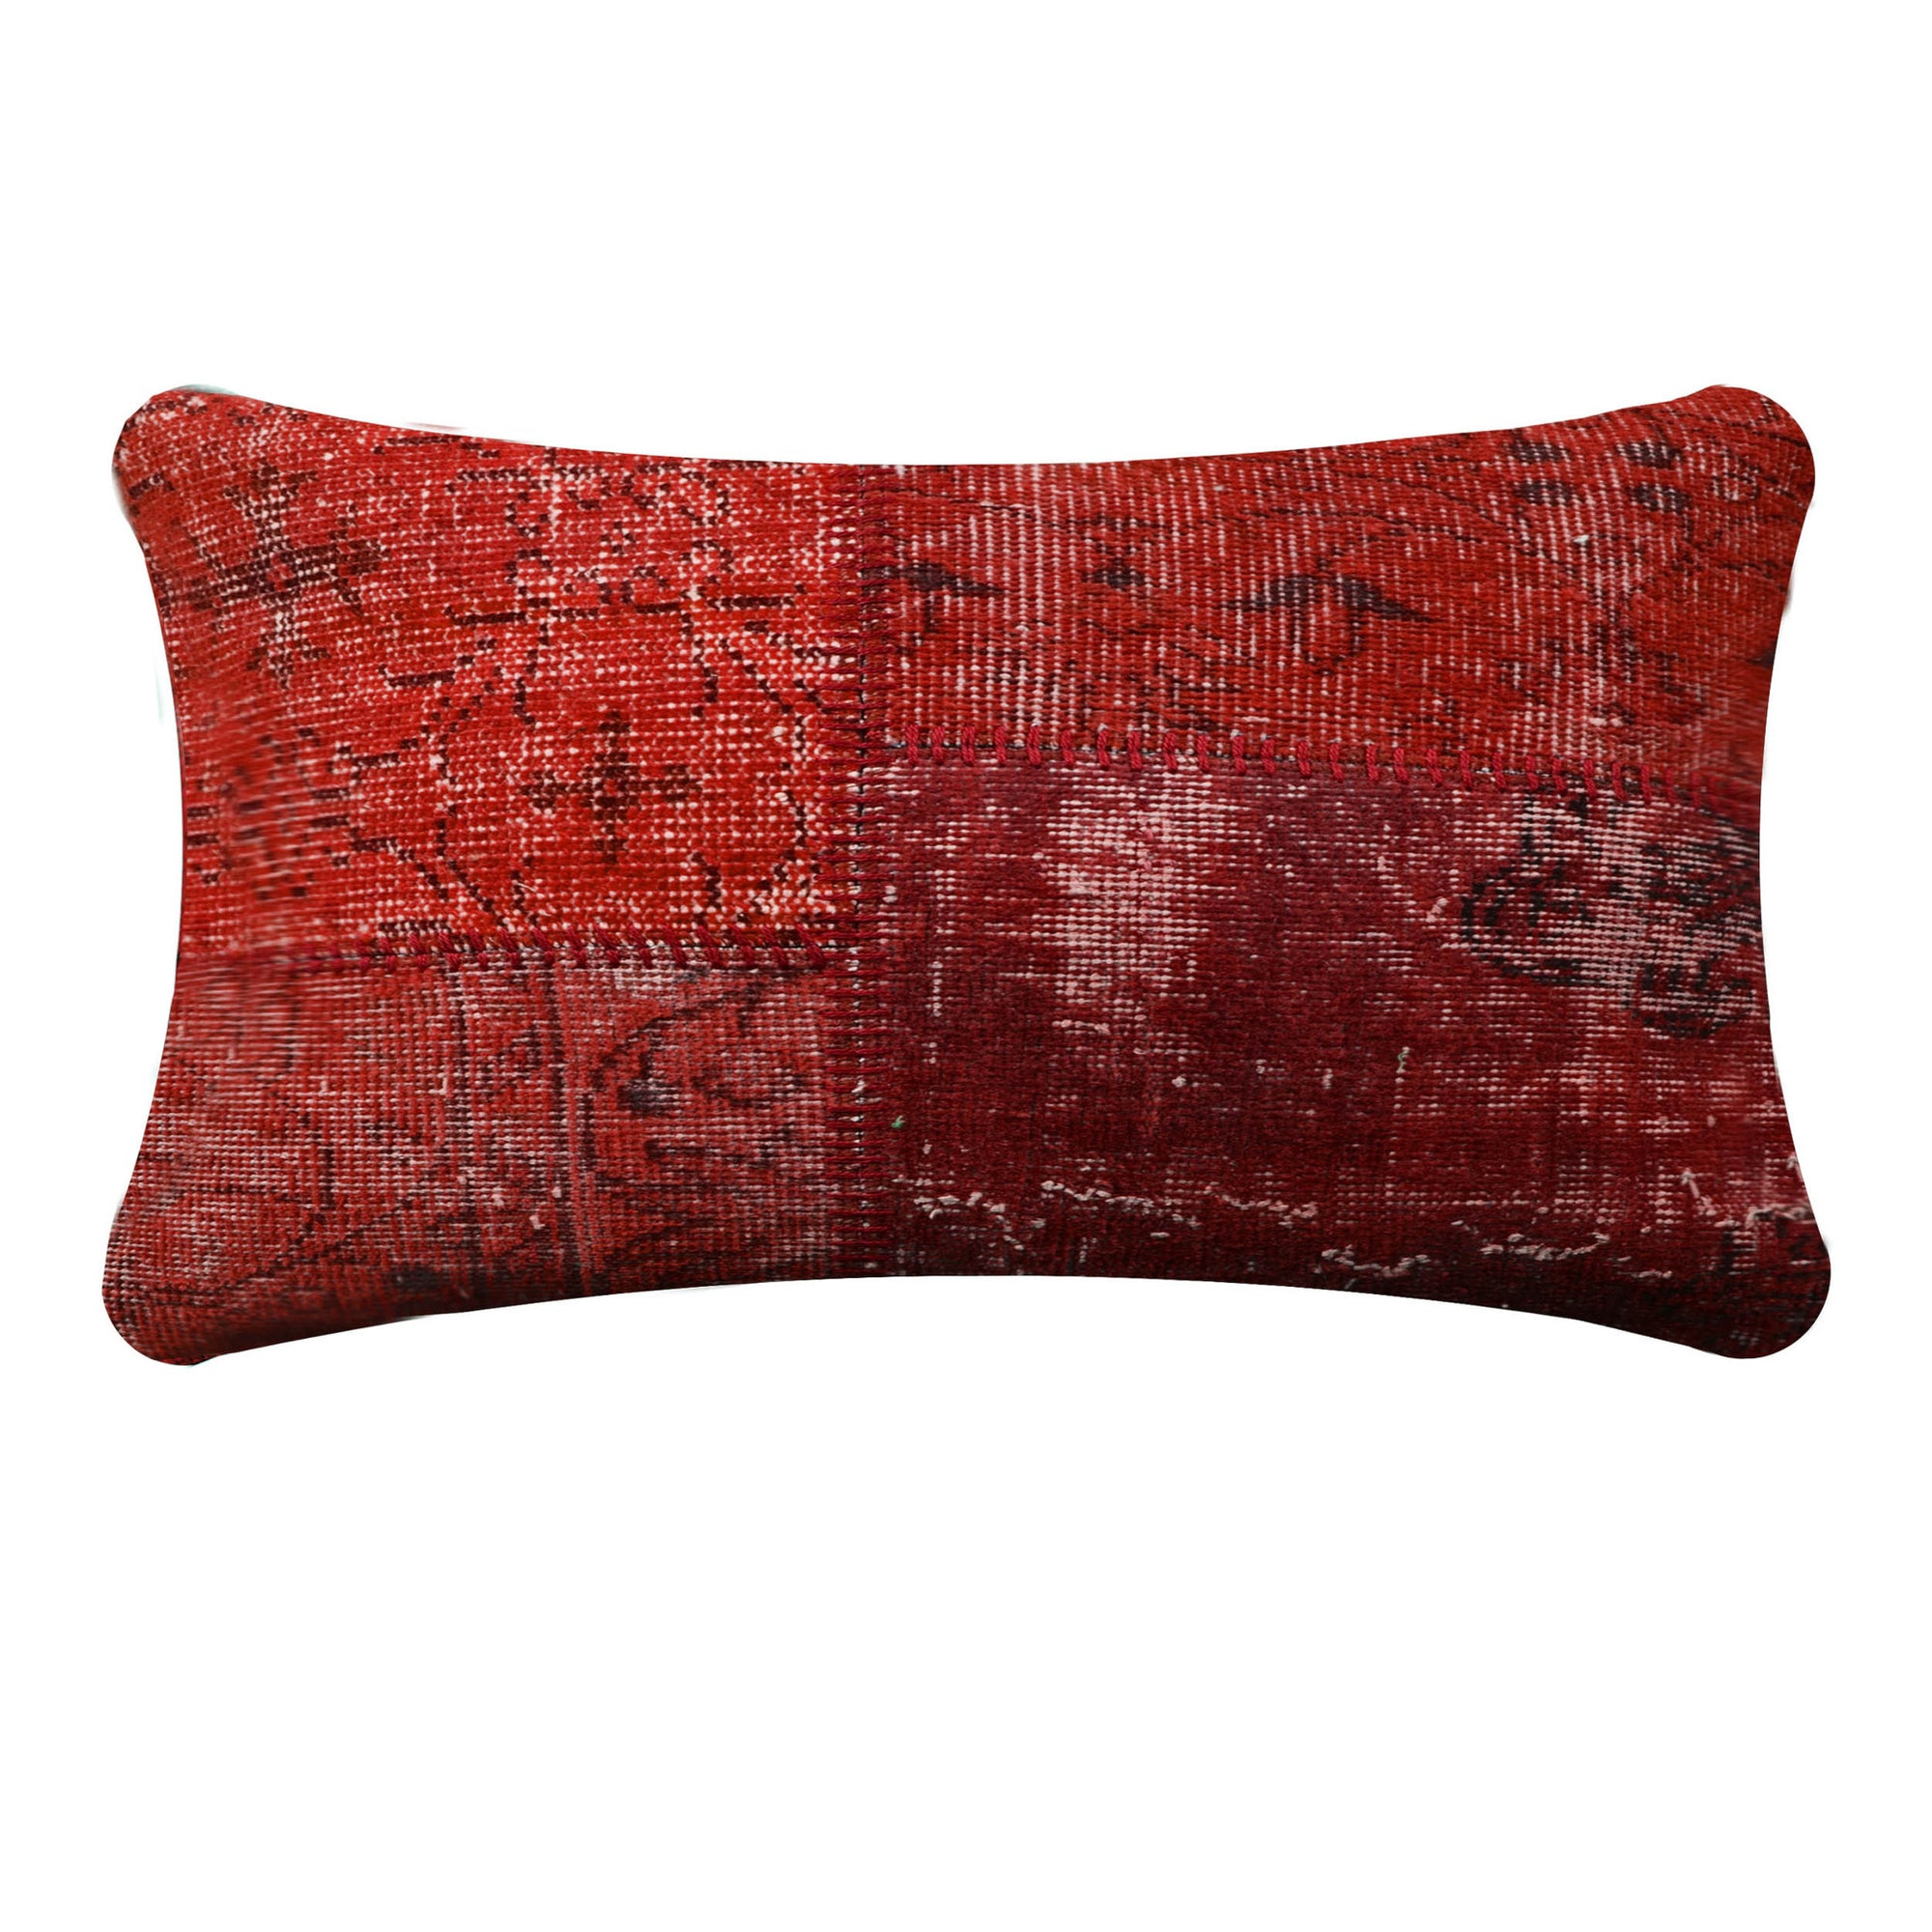 HALI X-Bursa Handmade over dyed CUSHION COVER 30X60 PWC0015 - ebarza